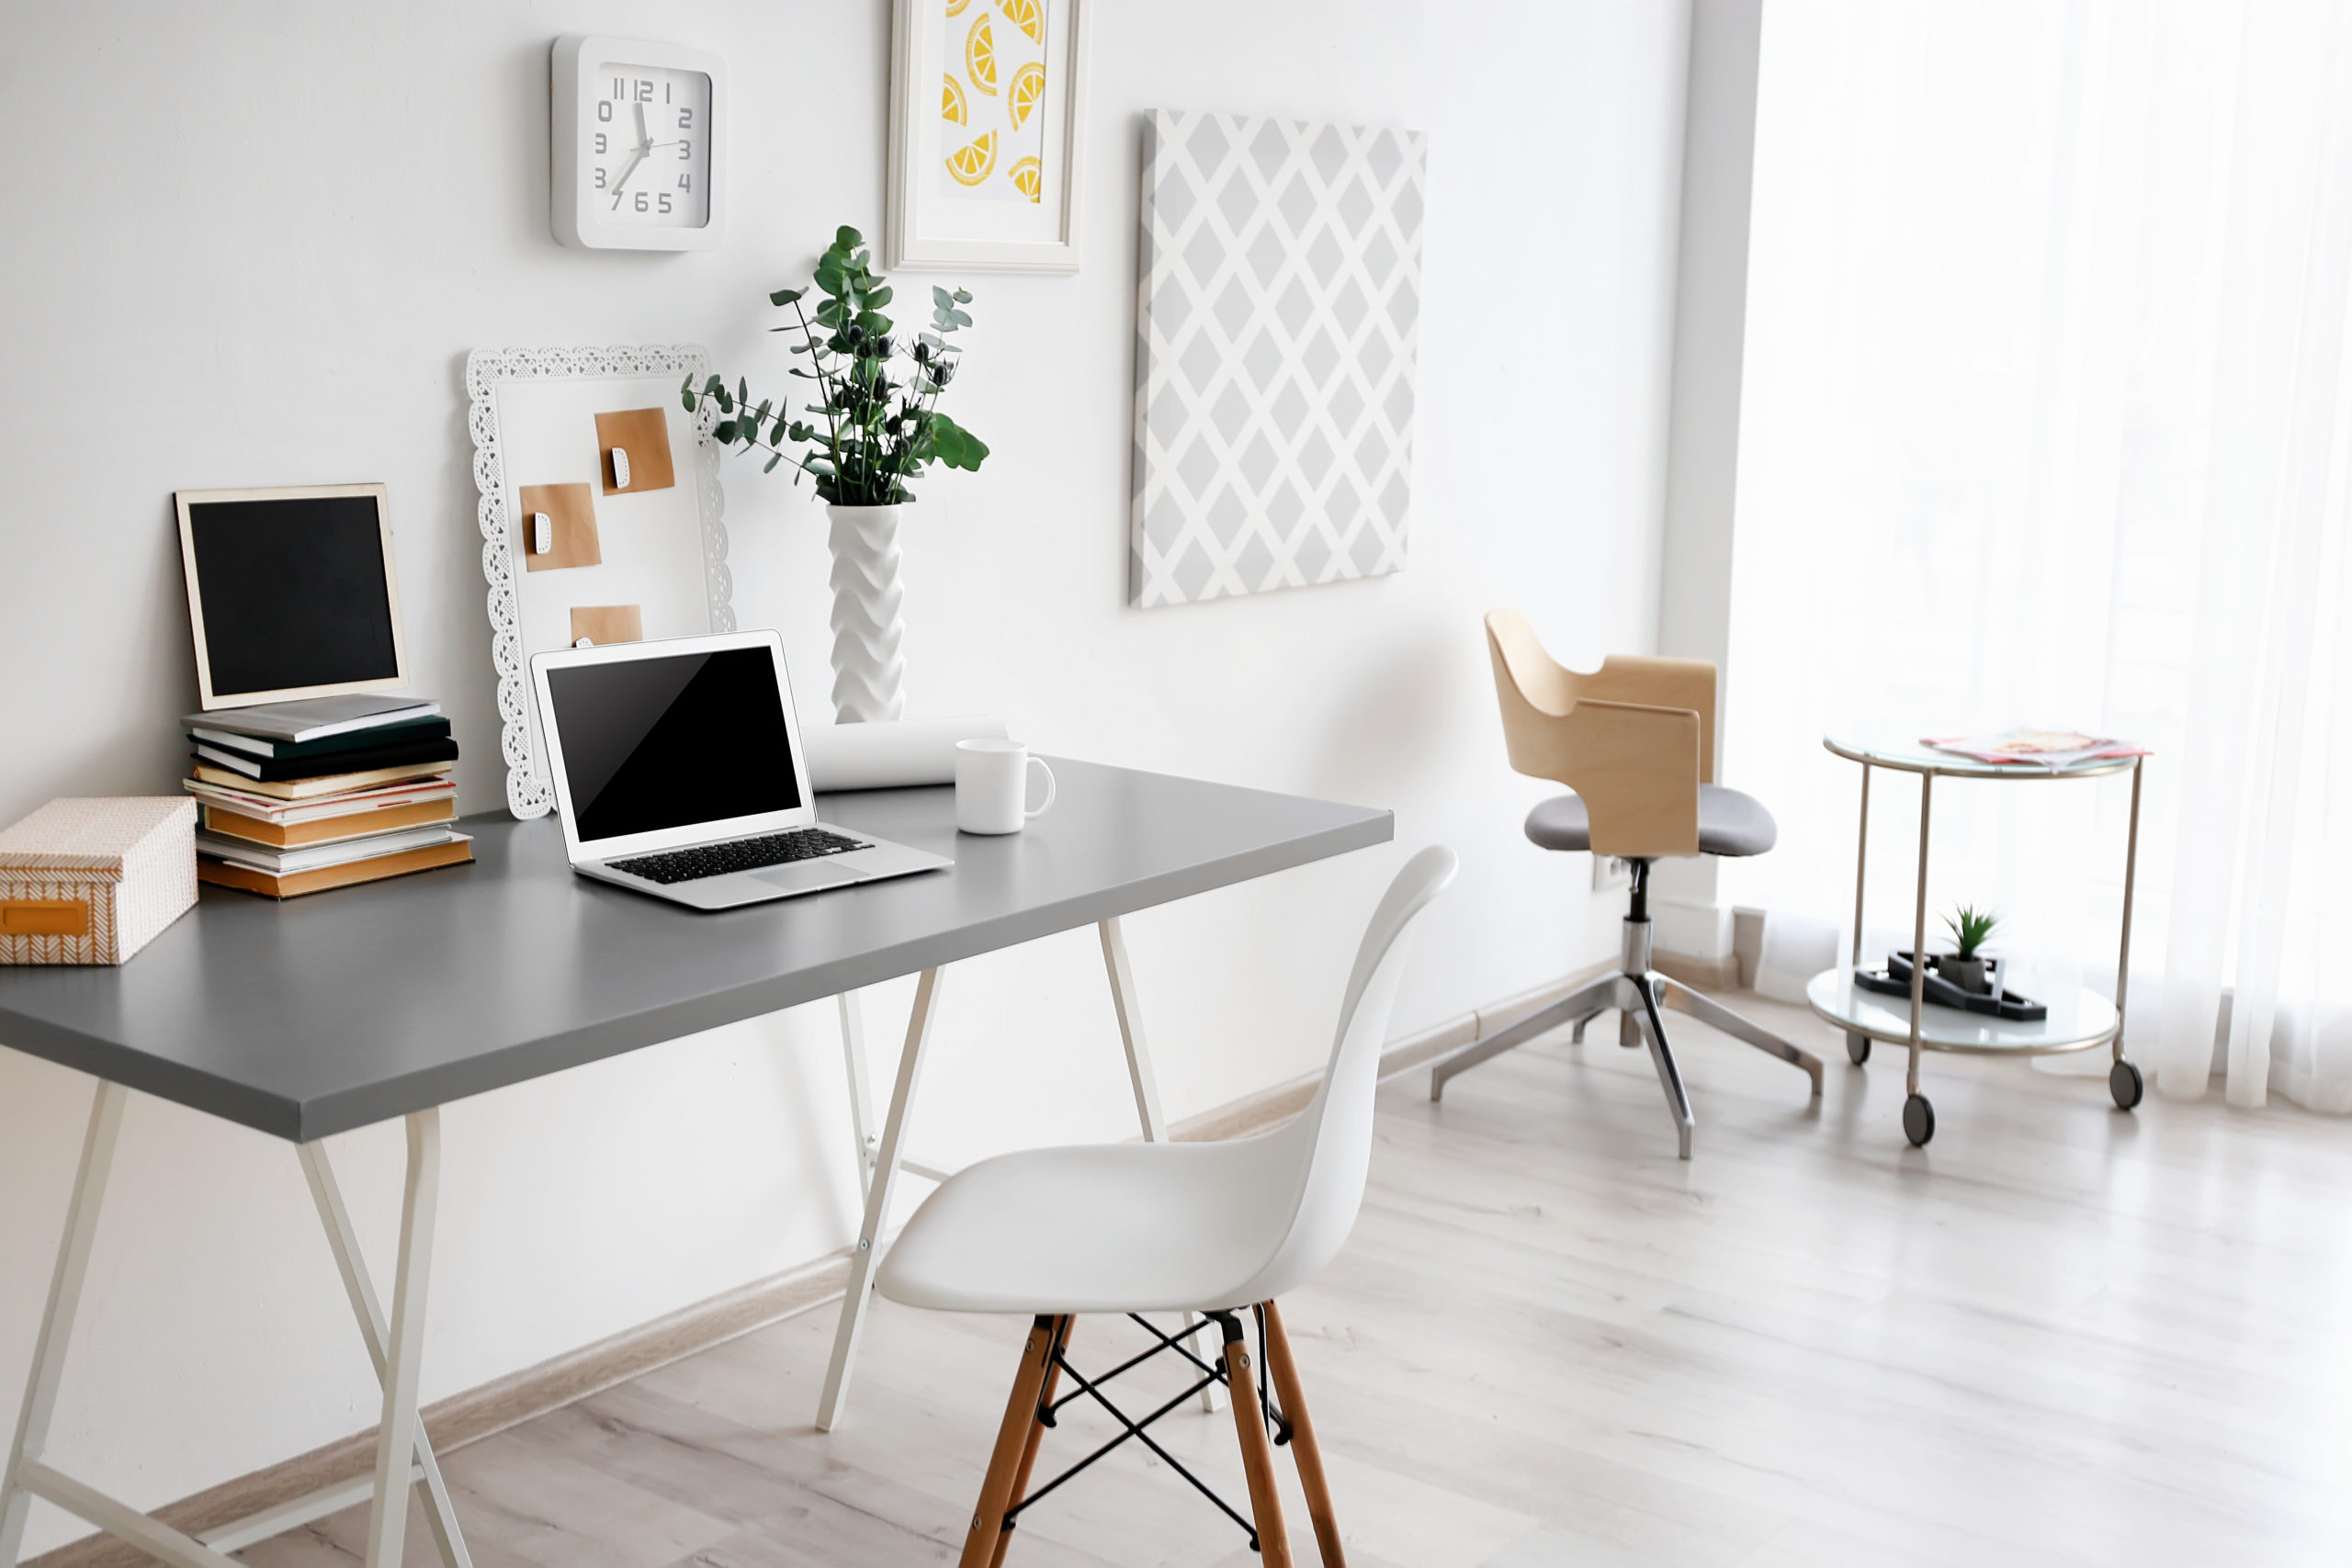 clutter free home office with long desk